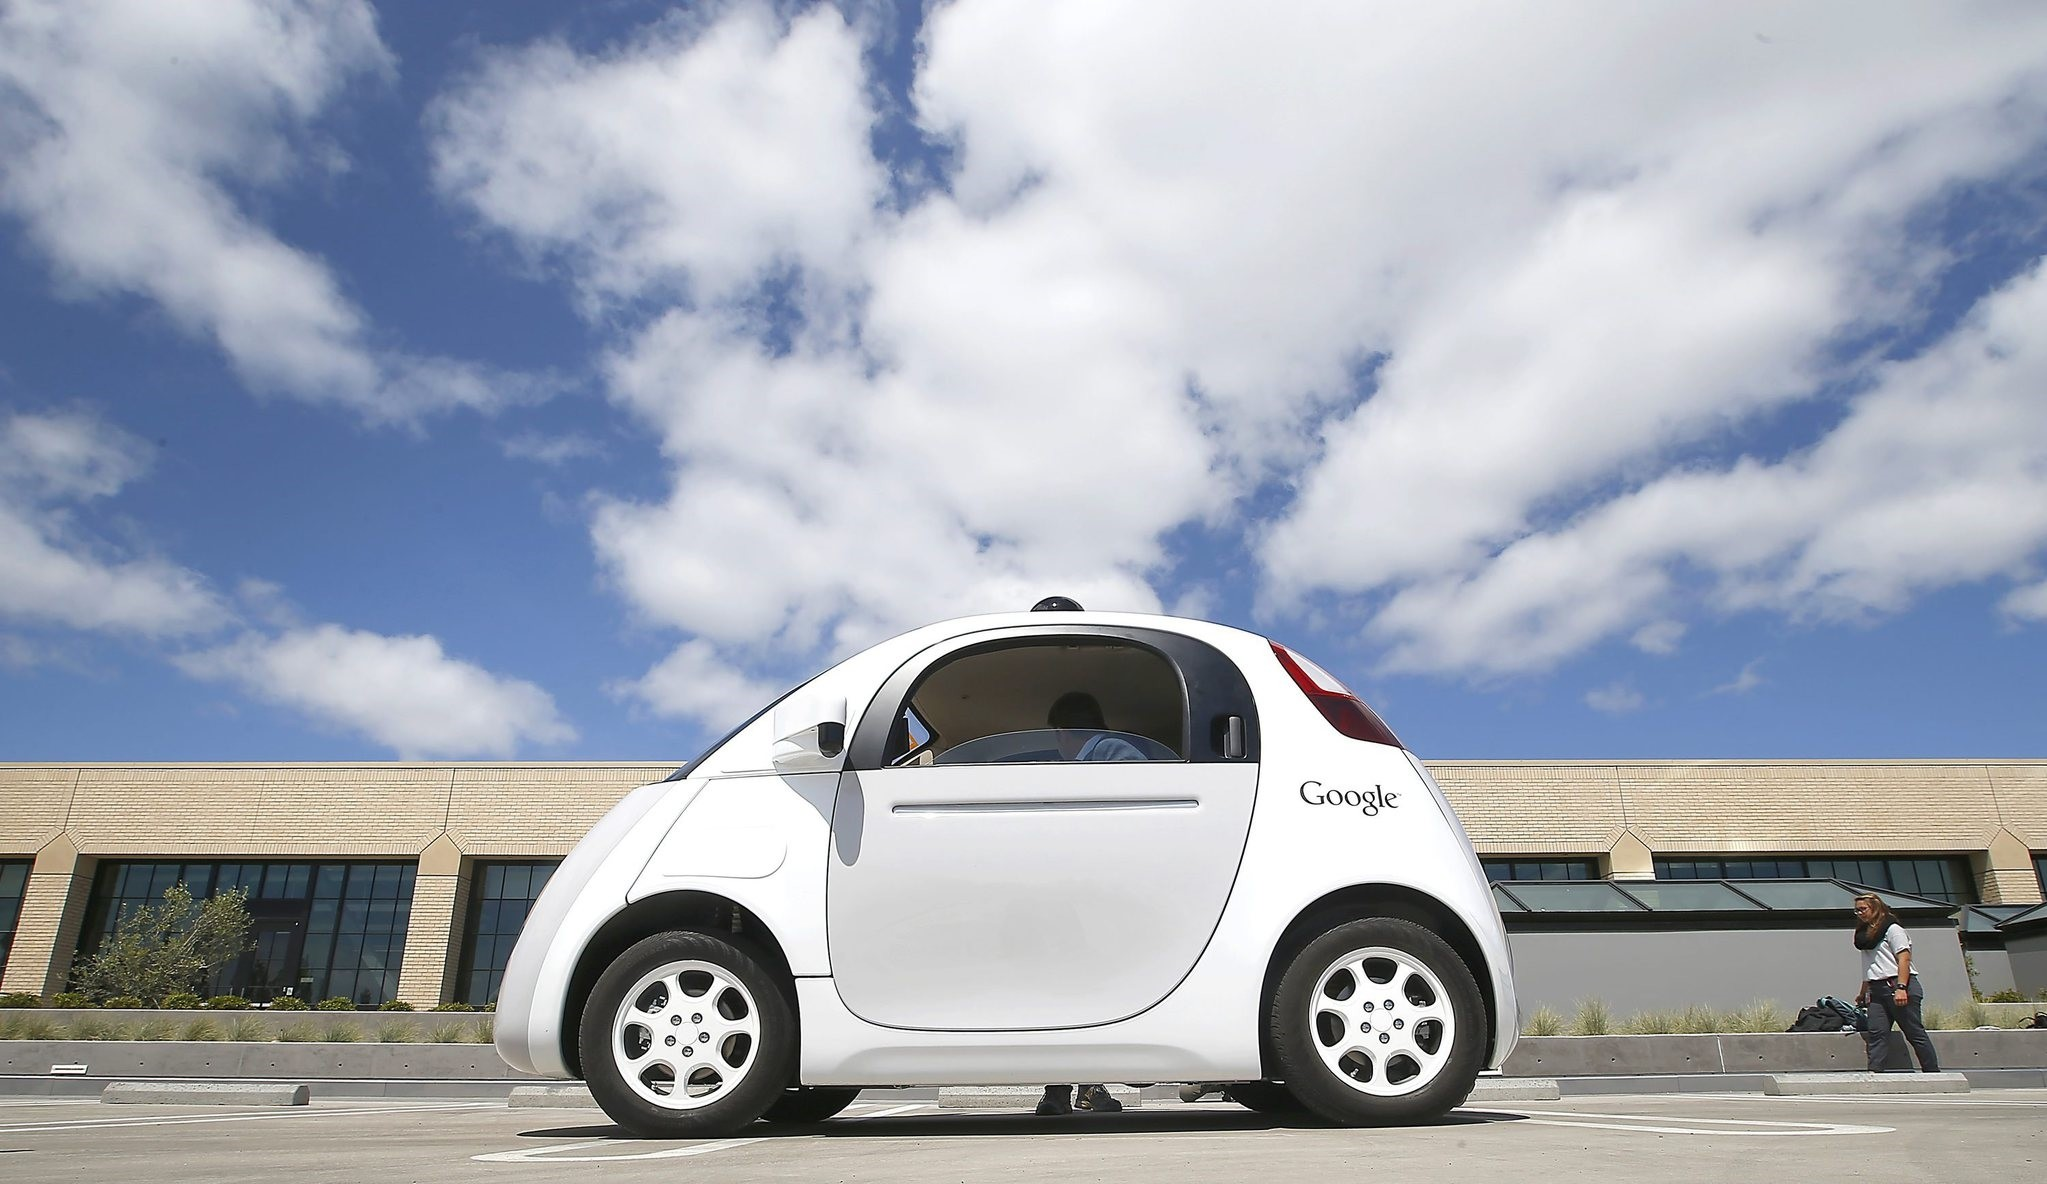 In this May 13, 2015, file photo, Google's new self-driving prototype car is presented during a demonstration at the Google campus in Mountain View, Calif. (AP Photo)